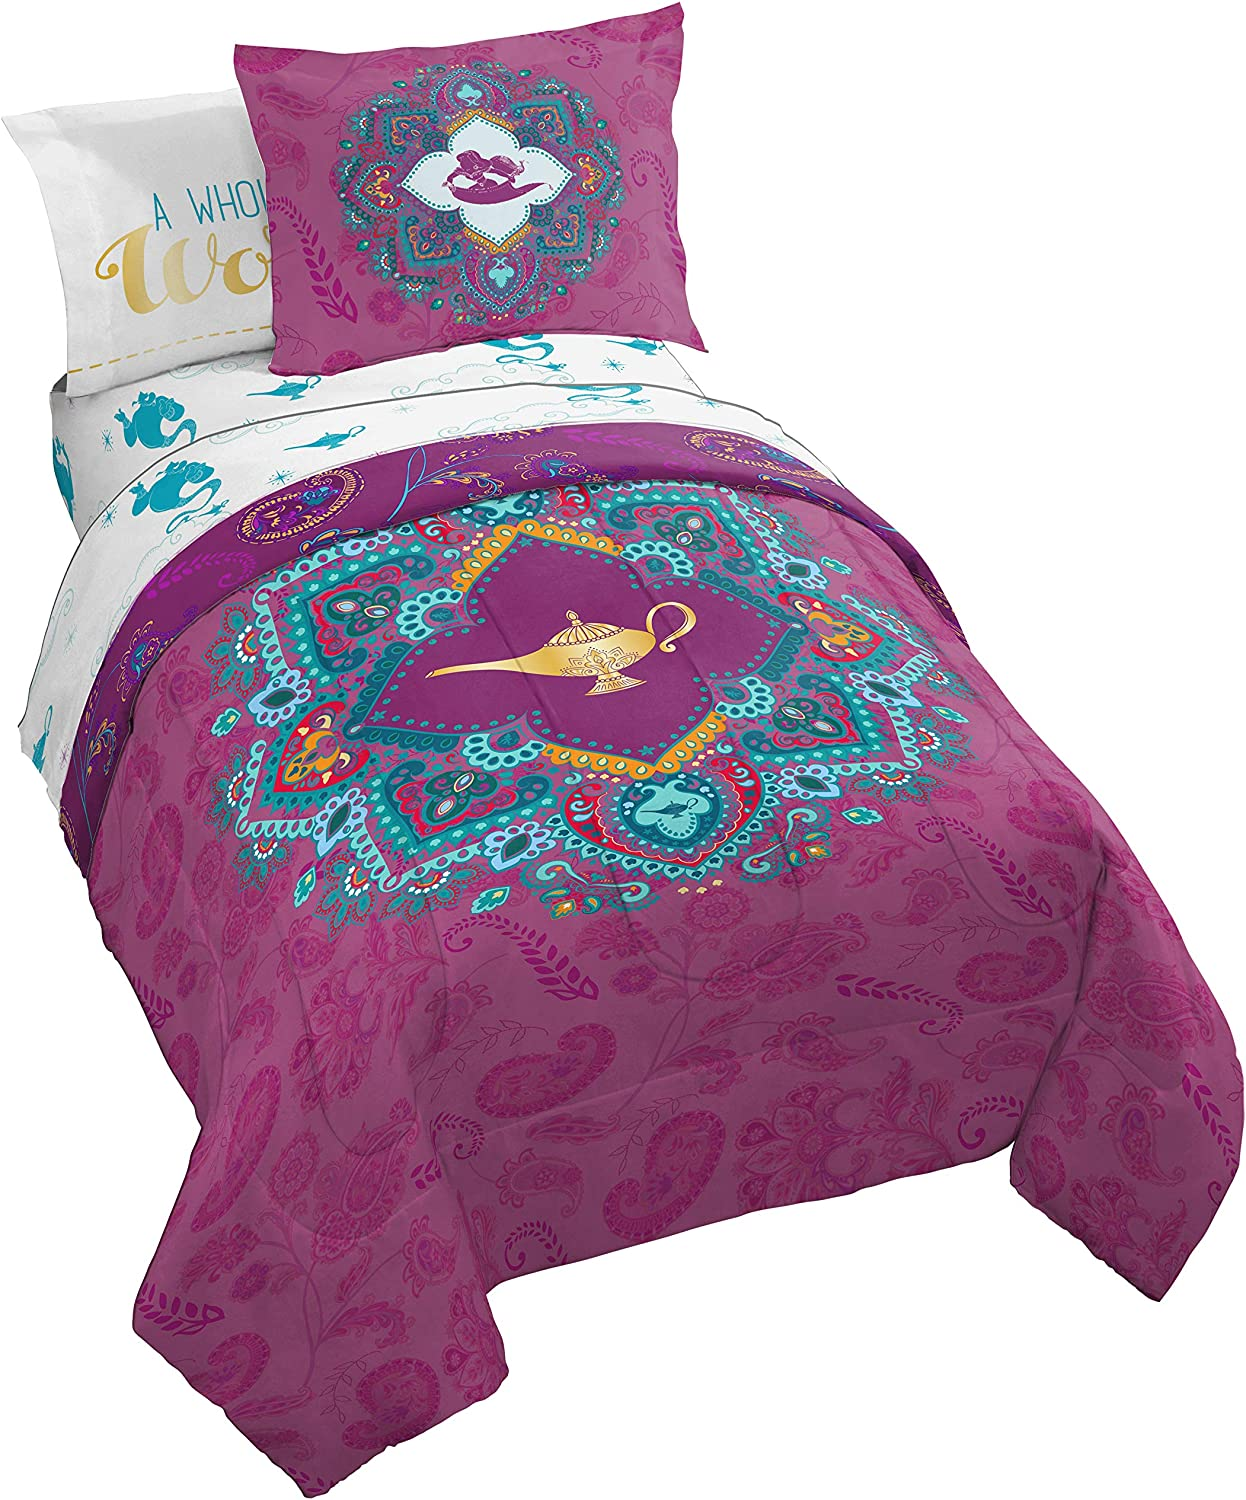 Jay Franco Disney Aladdin Show You The World Bed Set, Twin